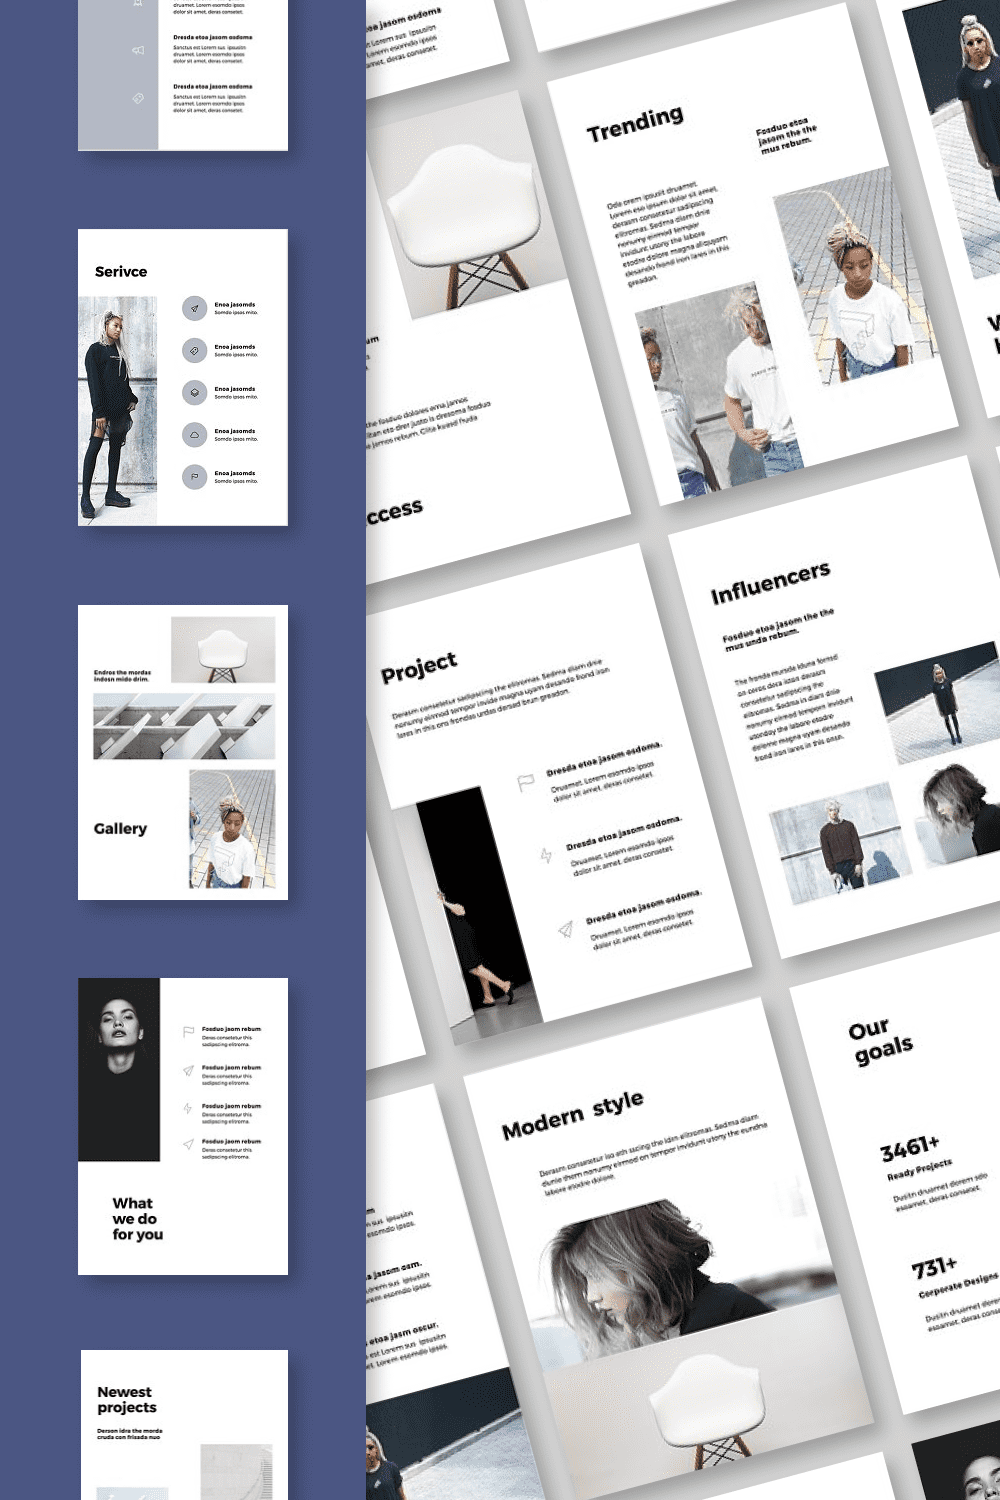 The collection of the template includes icons, infographics and diagrams, customized for the general style.